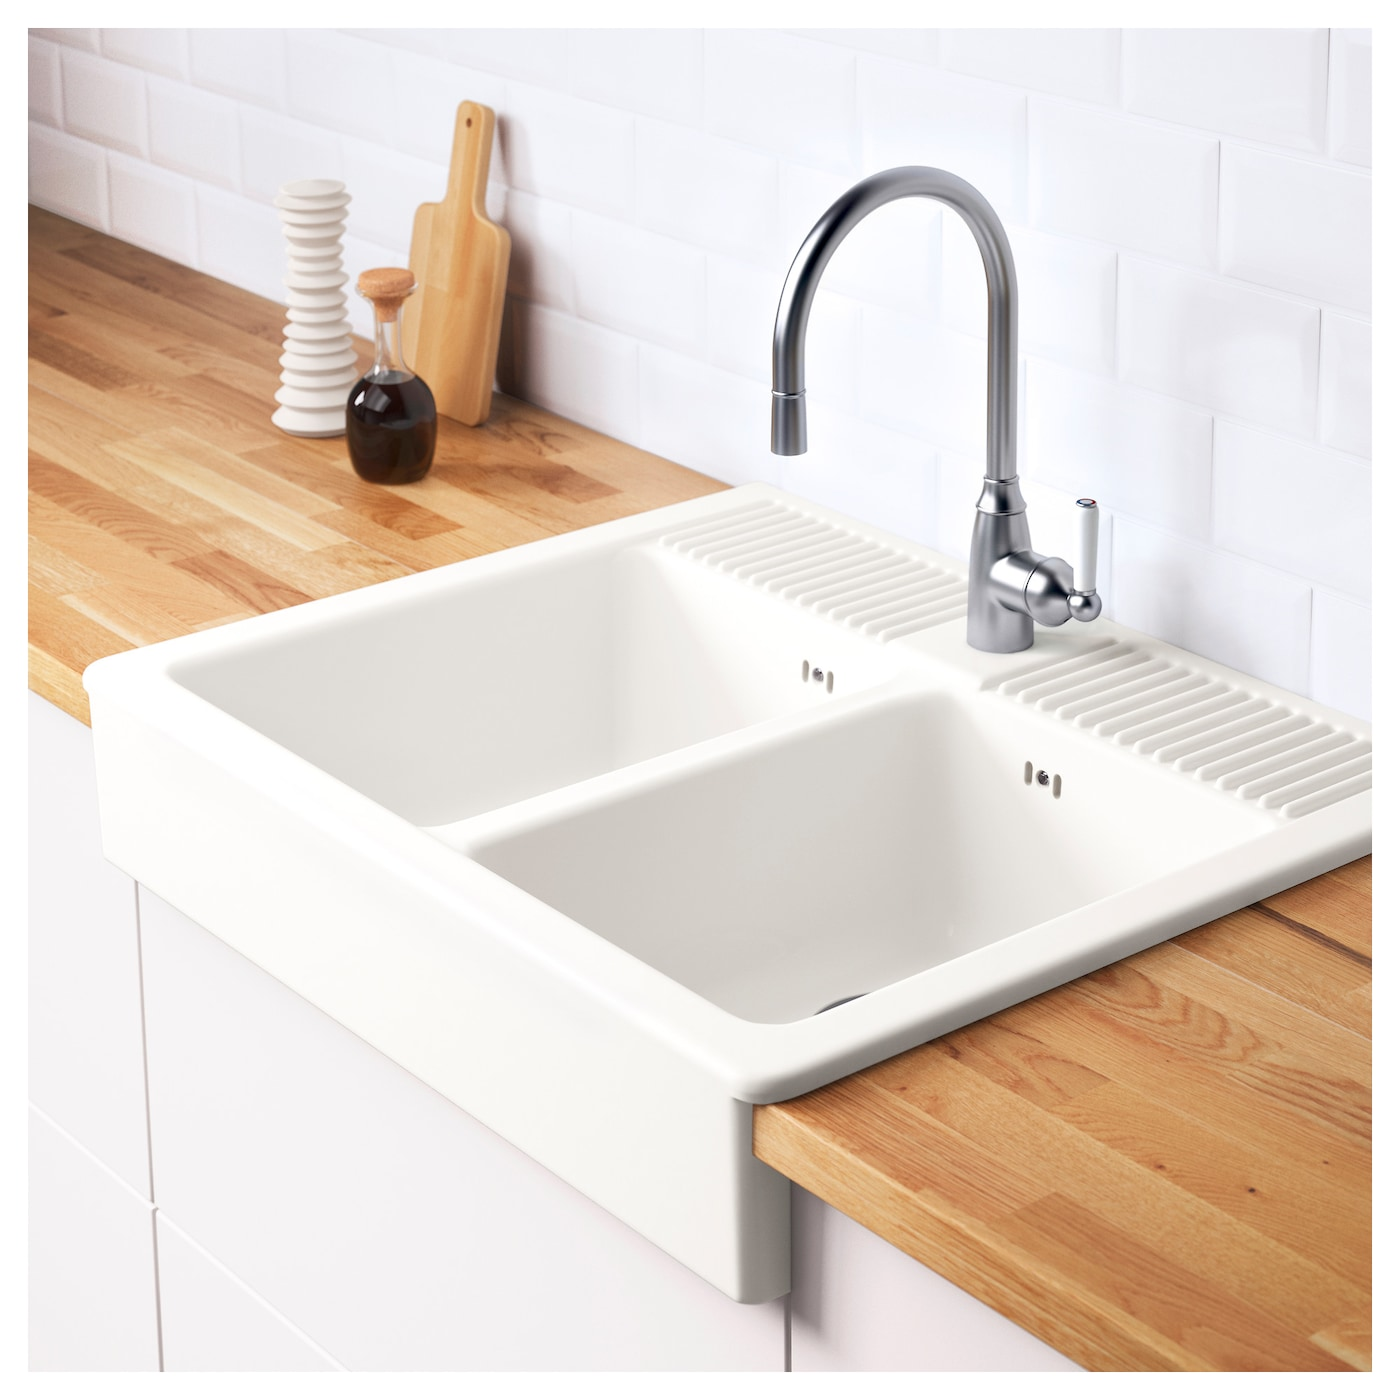 domsj onset sink 2 bowls white 83x66 cm ikea. Black Bedroom Furniture Sets. Home Design Ideas